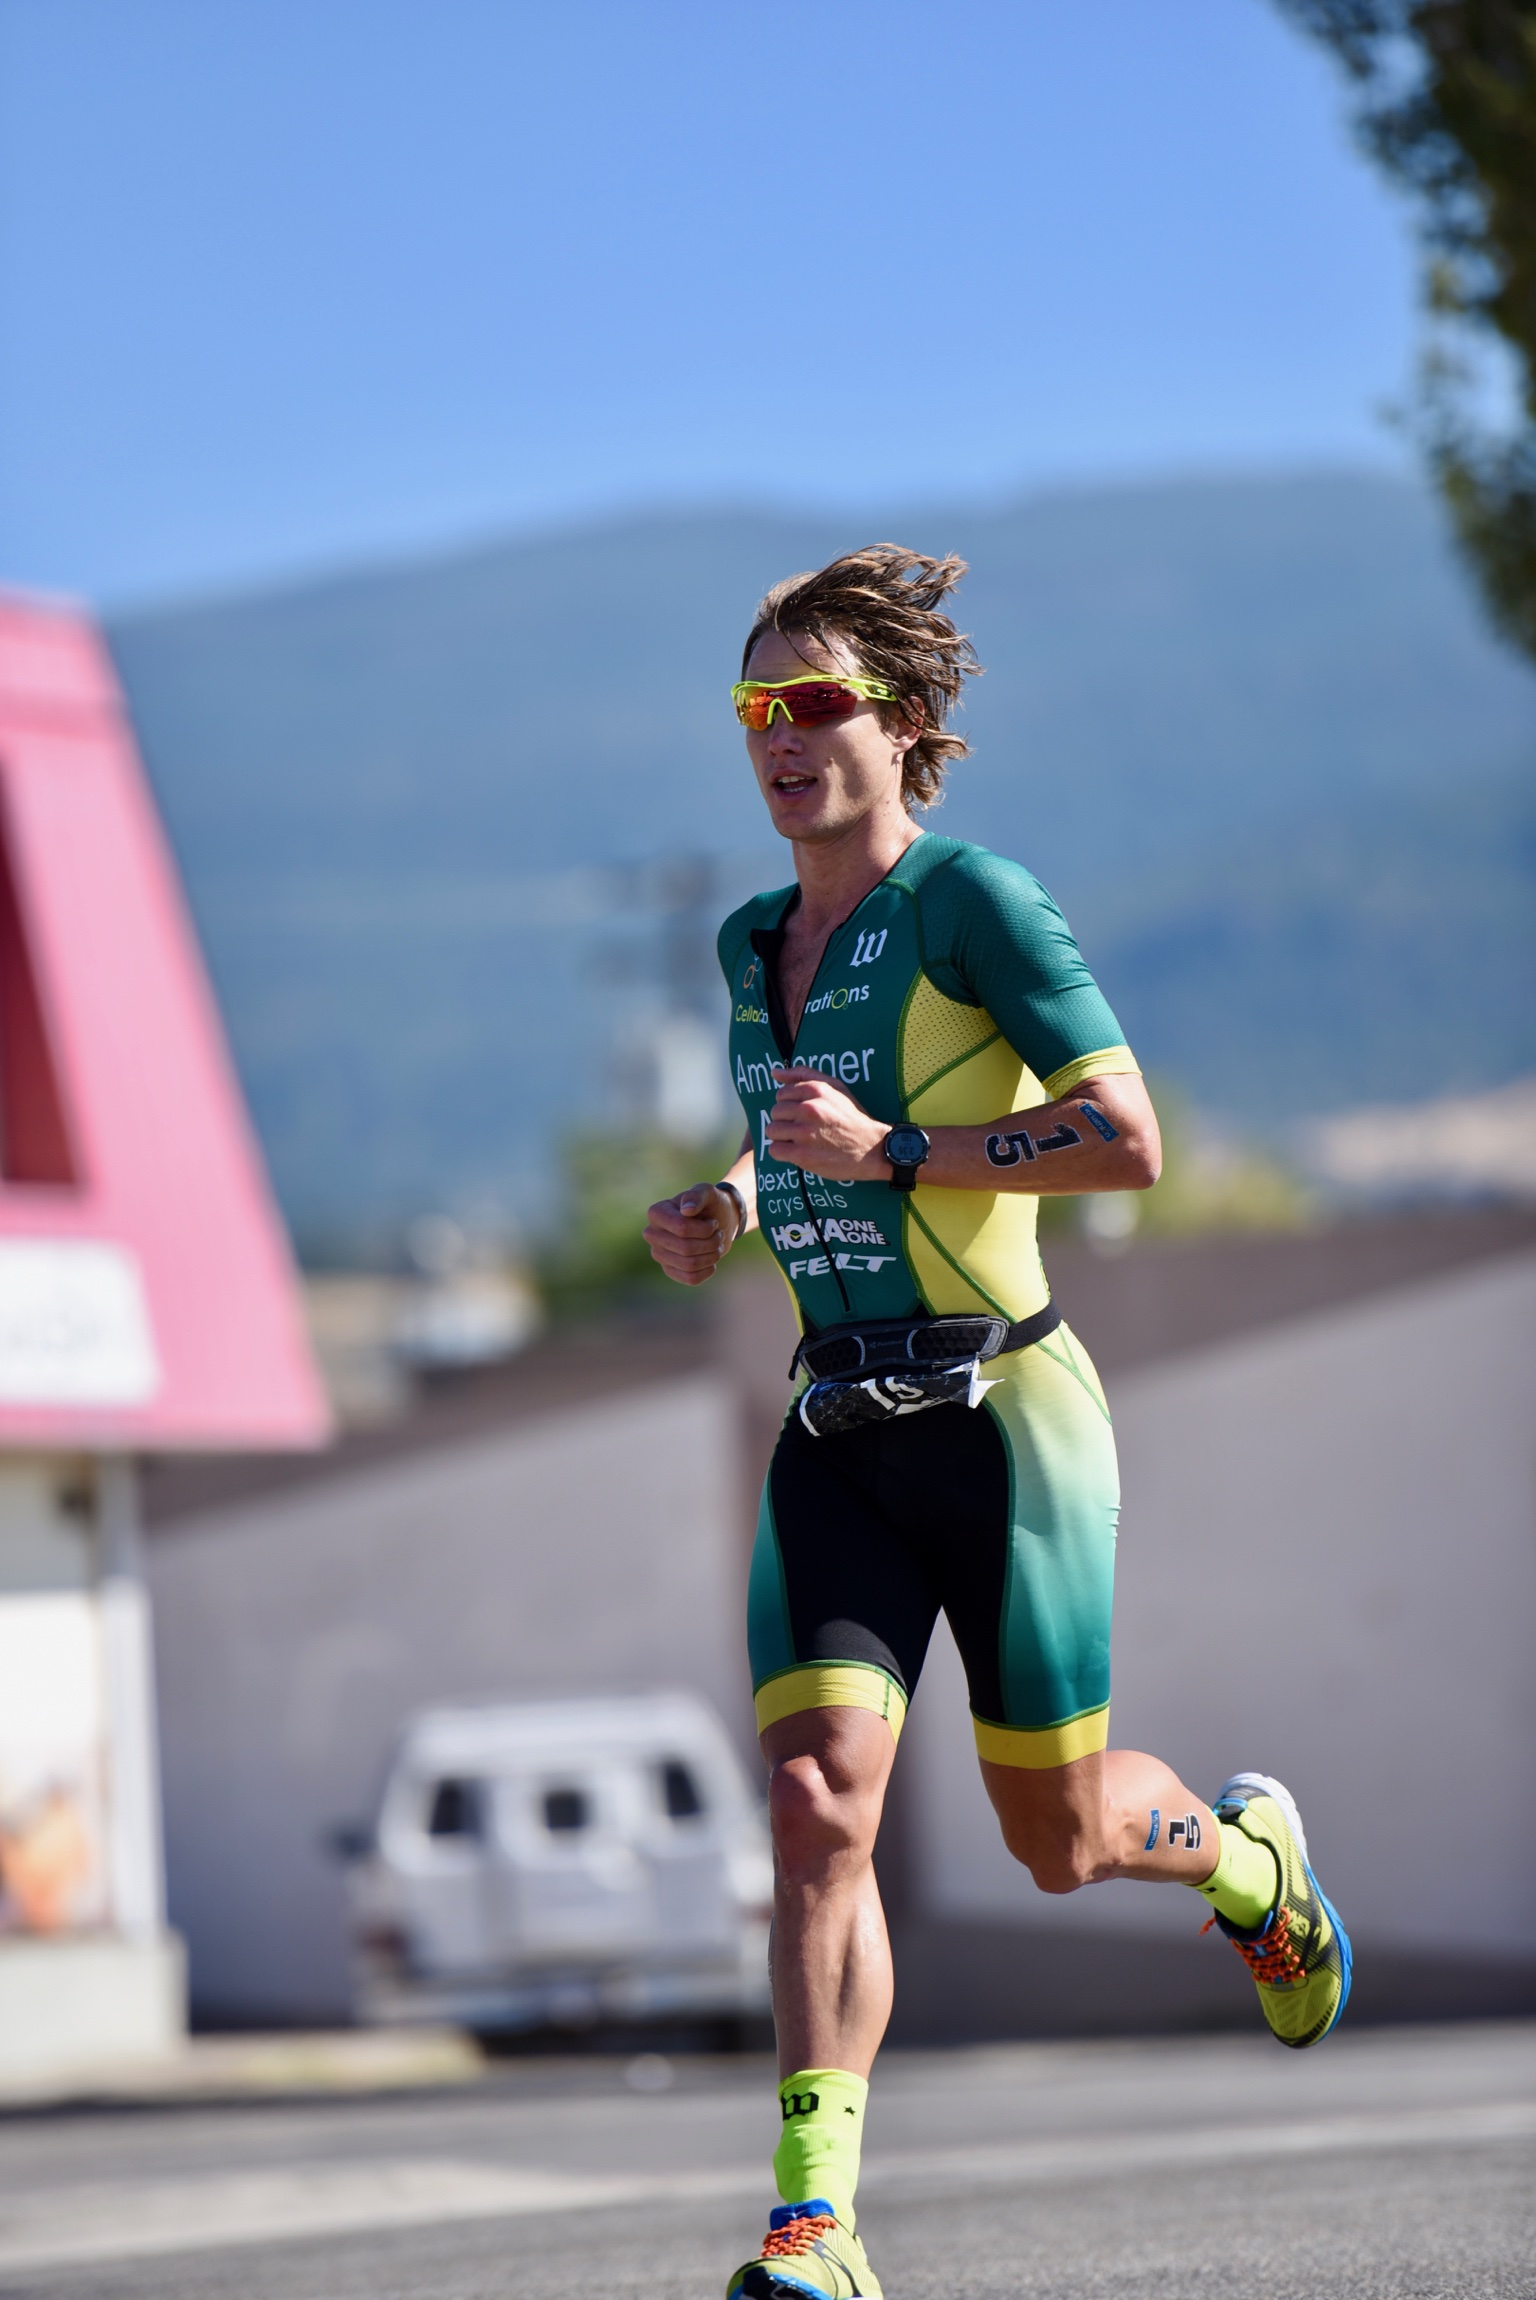 2017 Penticton ITU Long Distance World Championship, 2nd